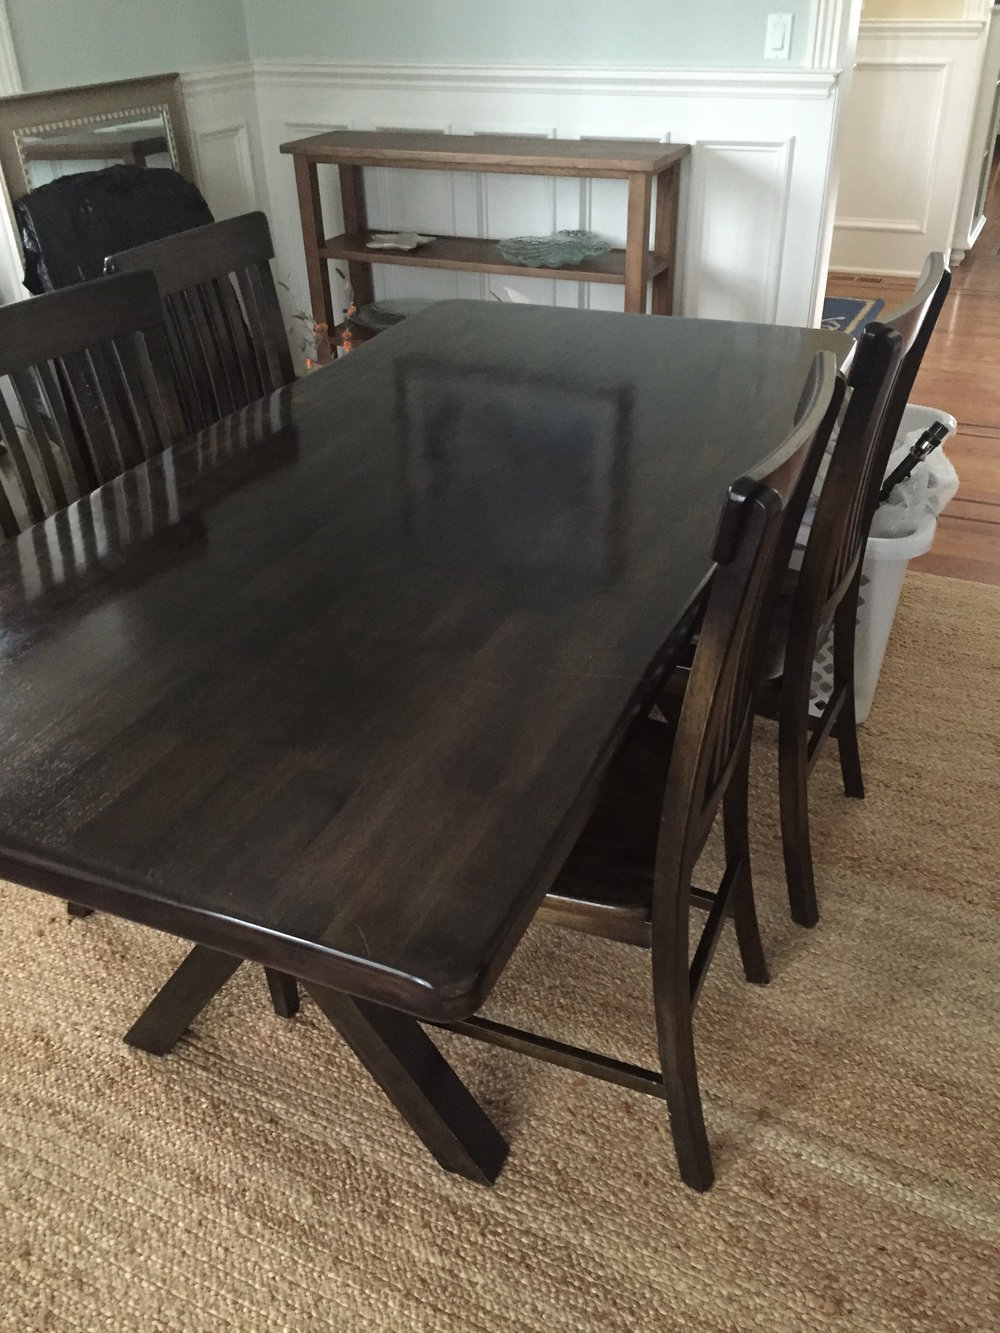 This Farmhouse Style Table With A Bench Was Not Needed For The Dining Room And